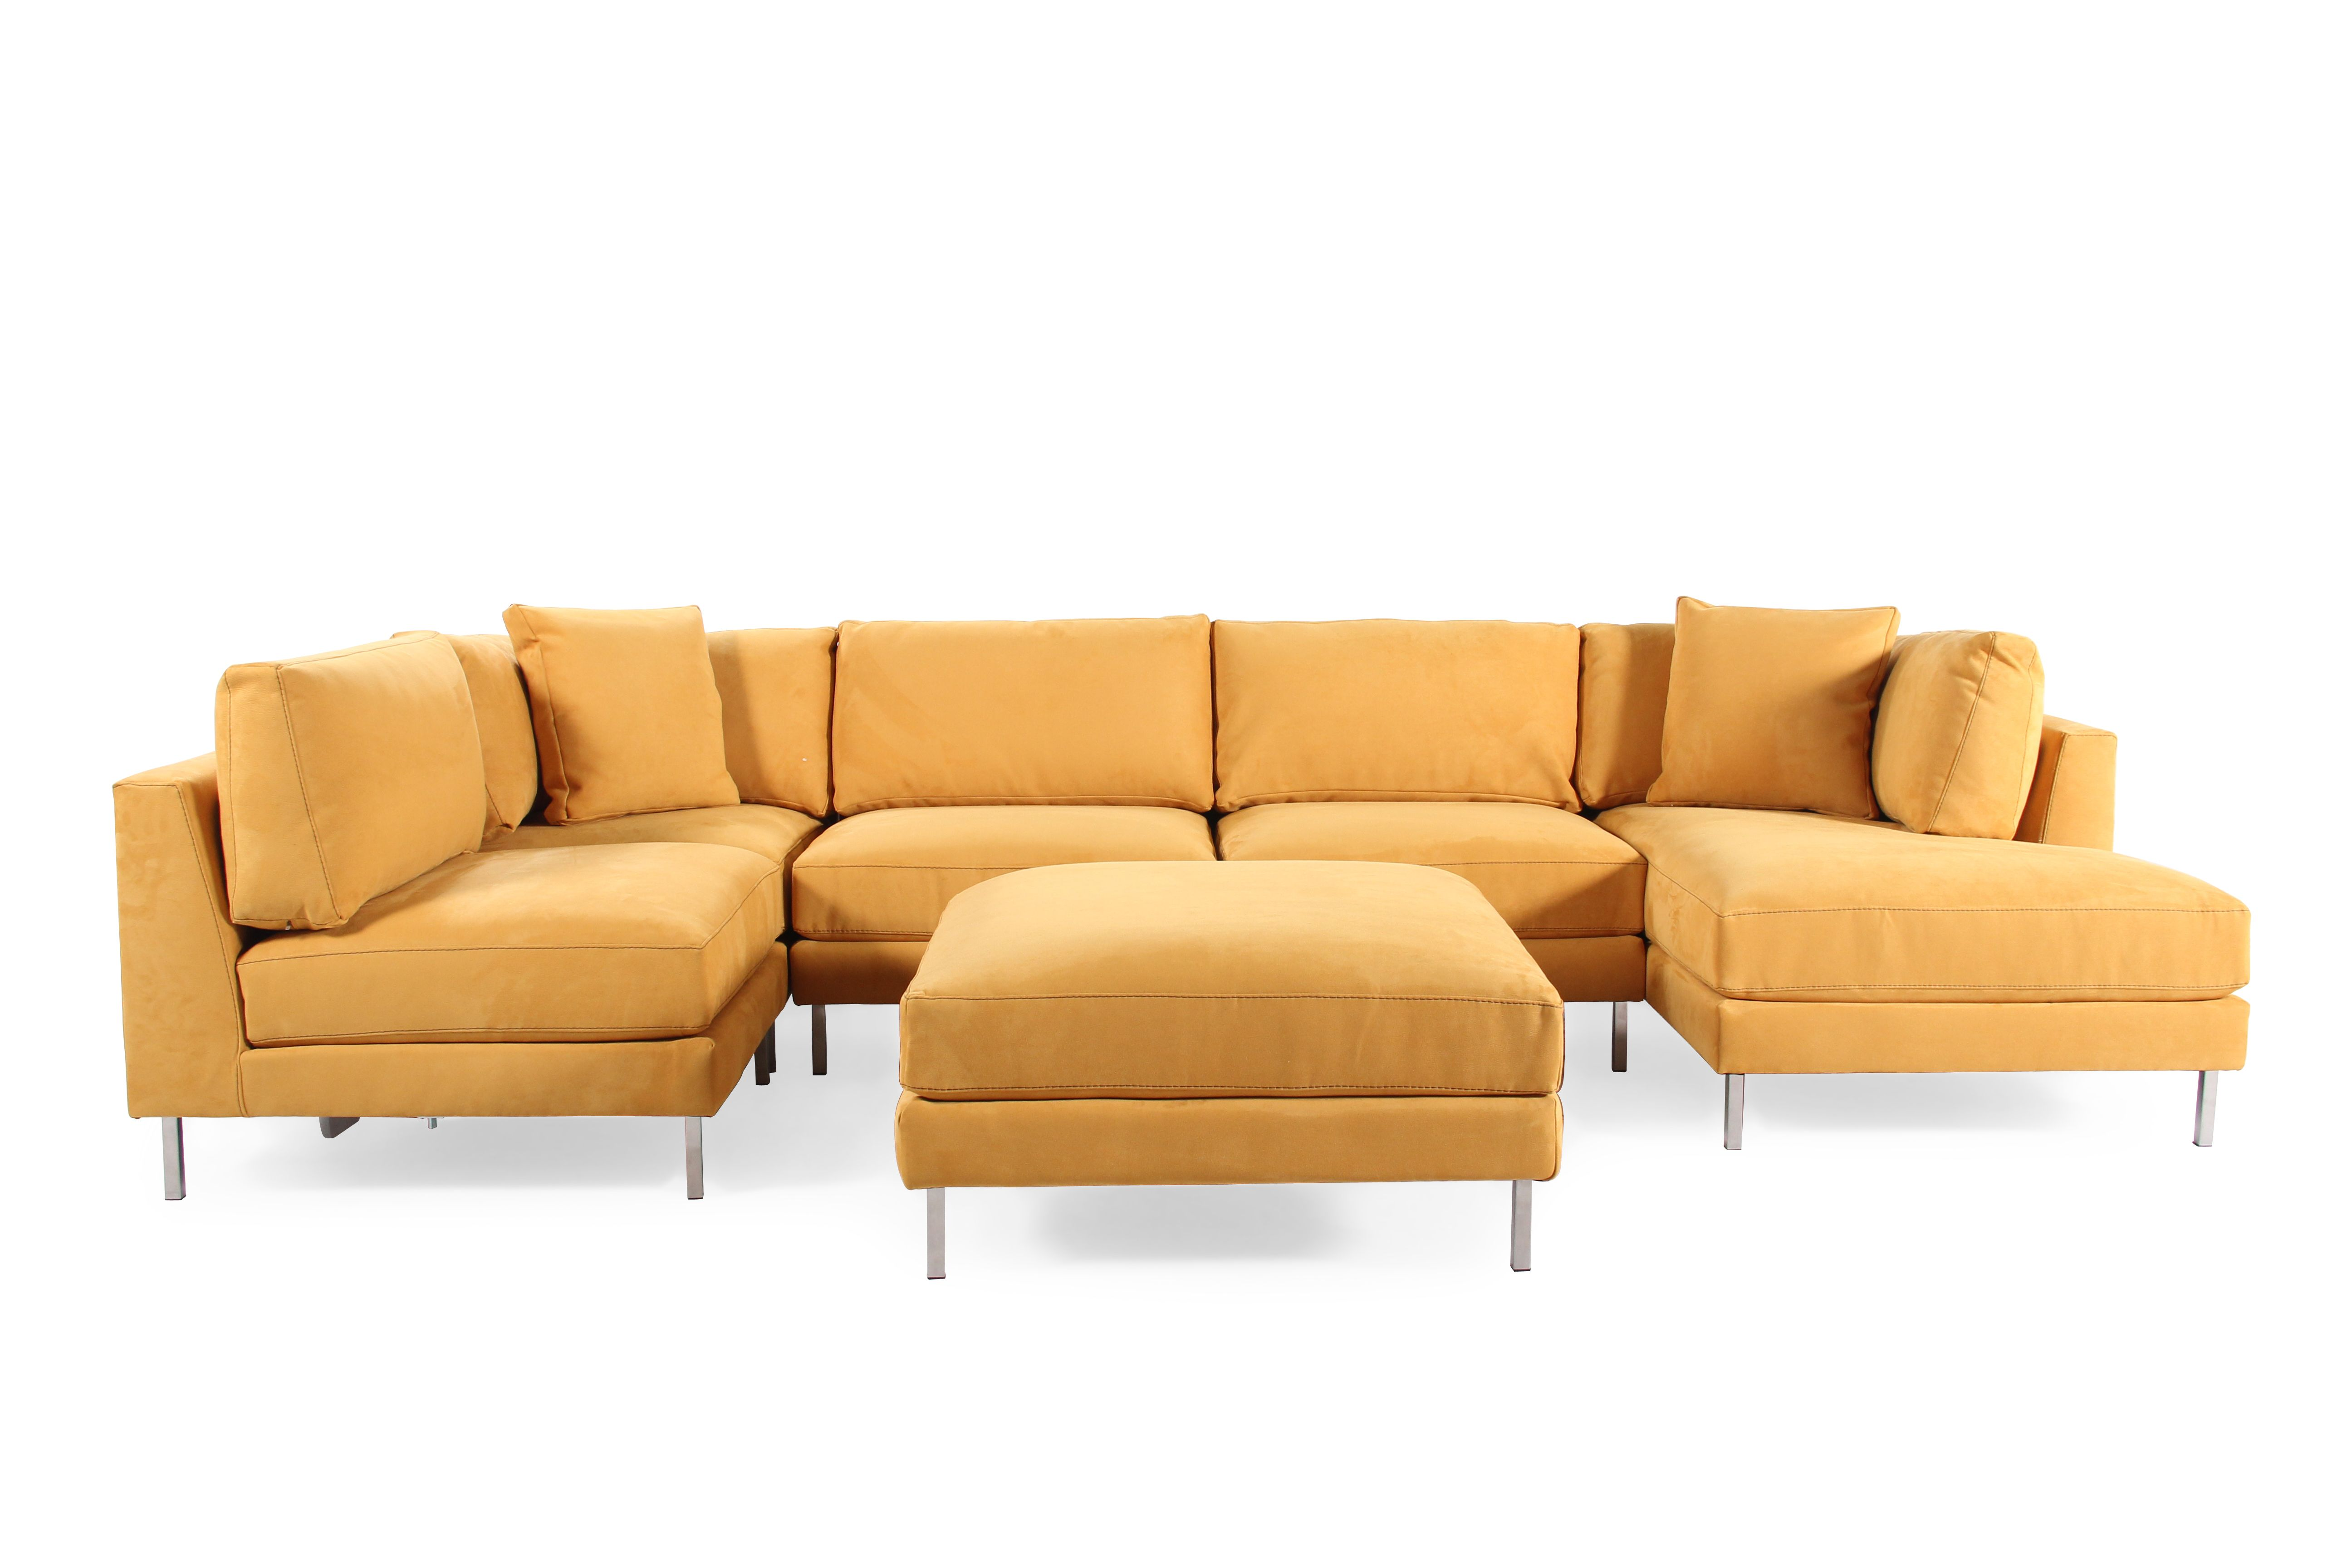 jonathan louis remy six piece sectional mathis brothers furniture rh pinterest com